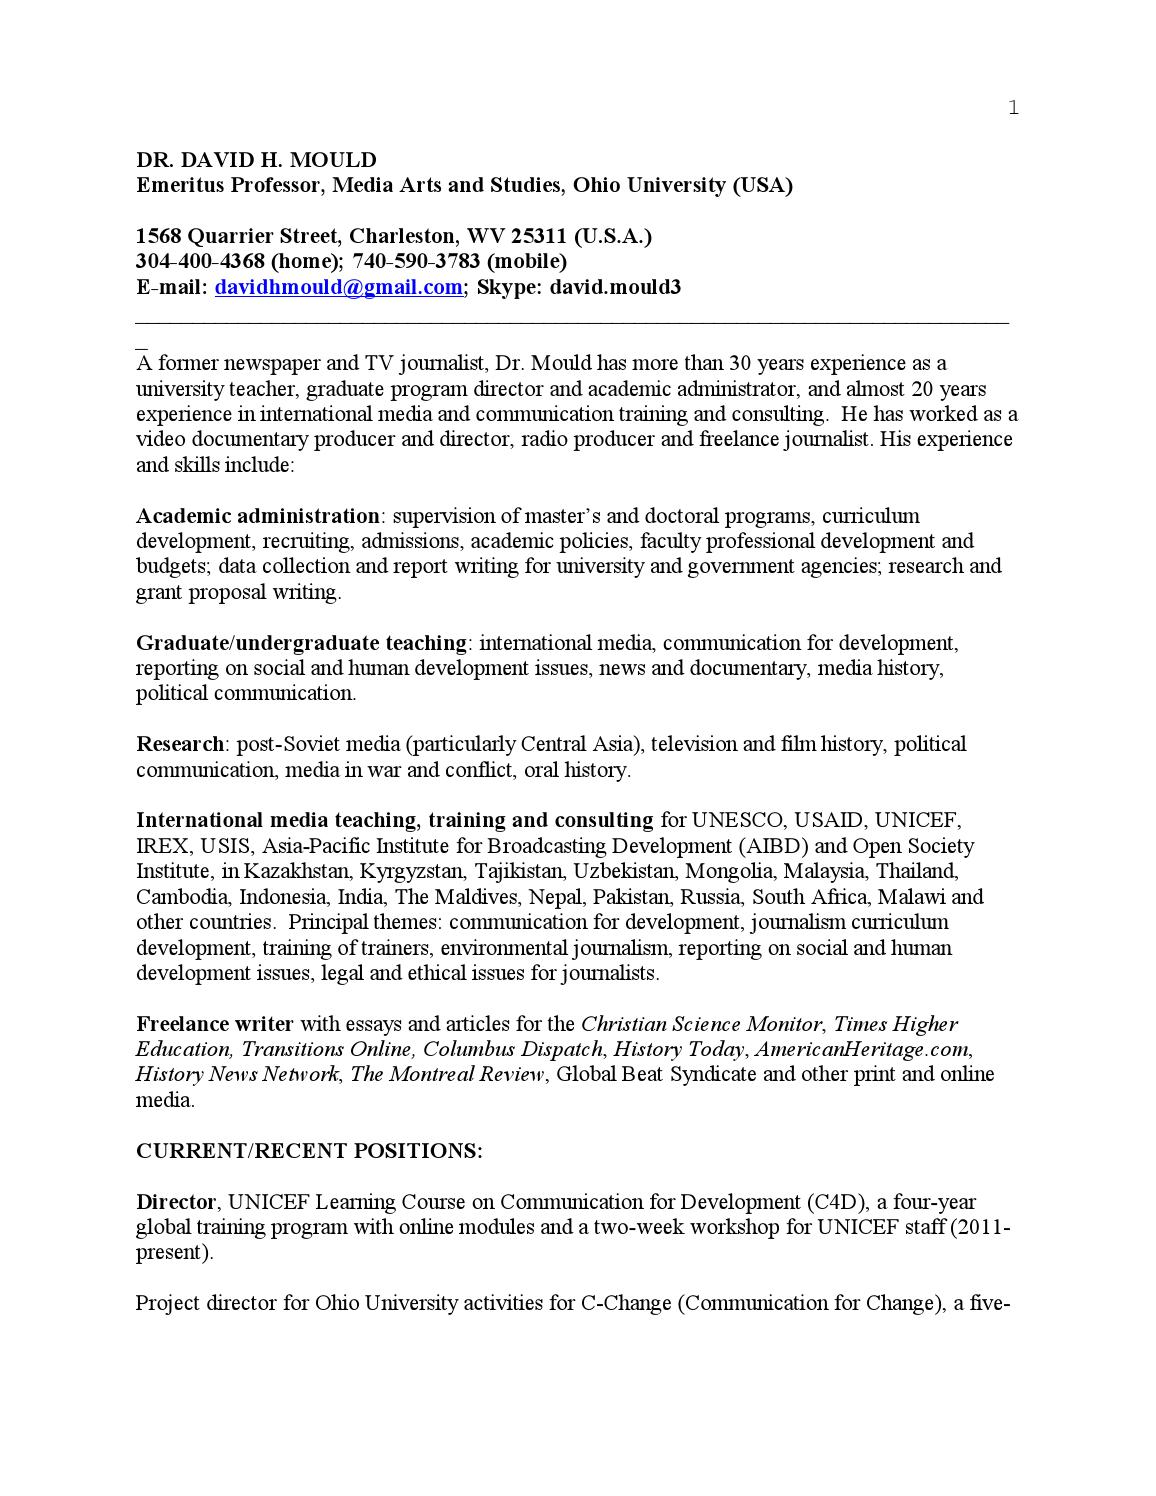 Technical Report Writing Courses In South Africa house bill of ...